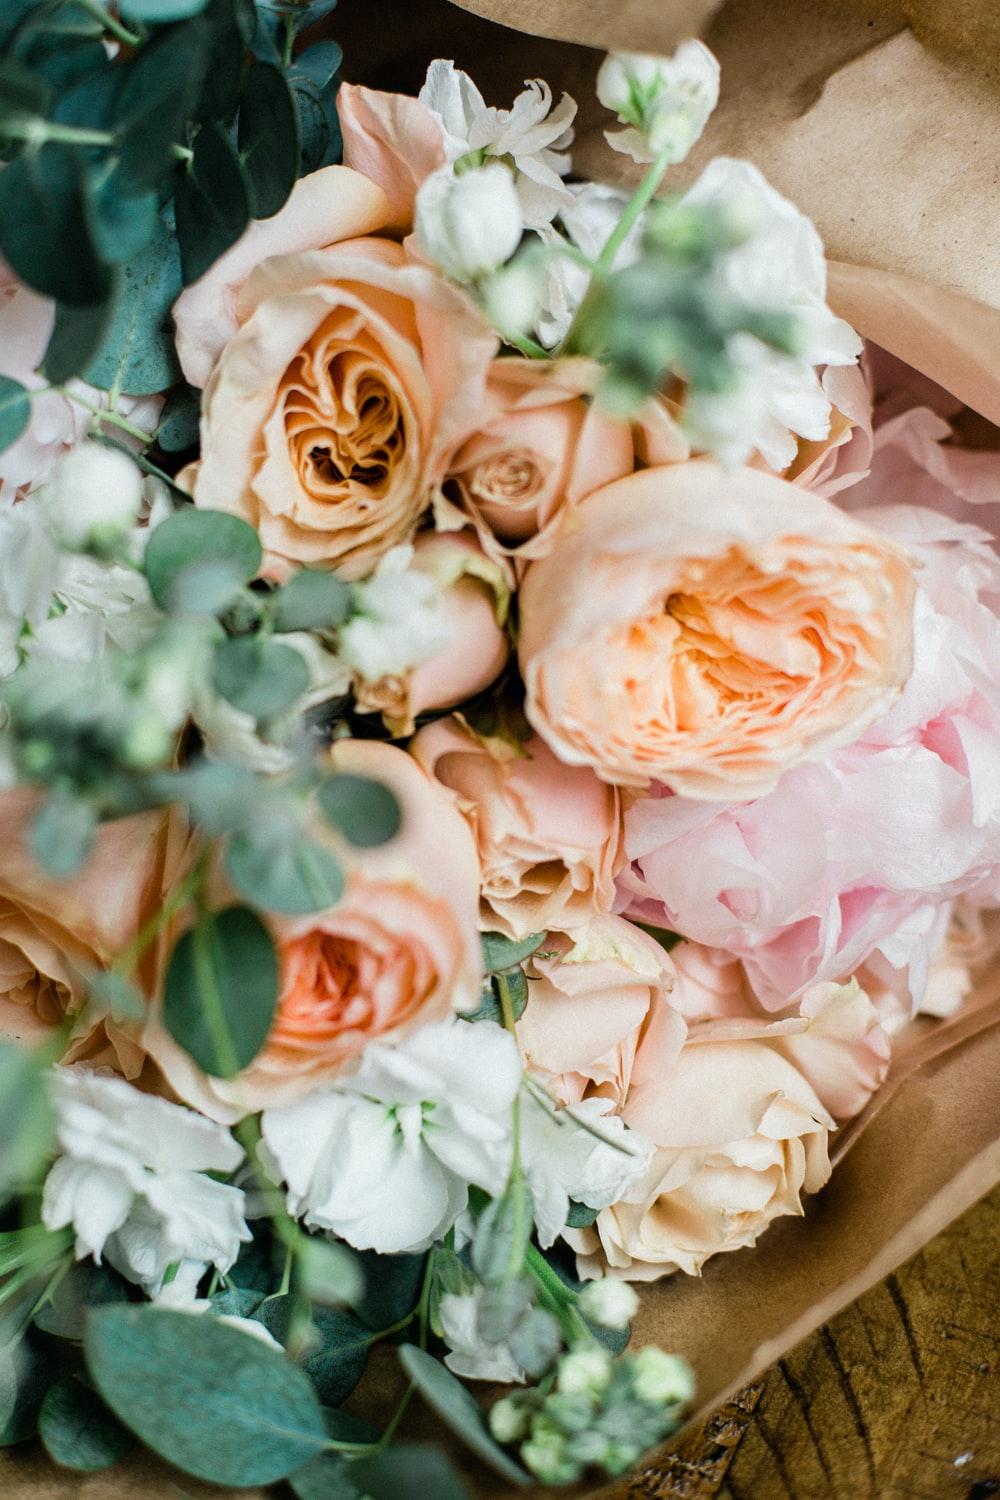 beige and pink petaled flowers